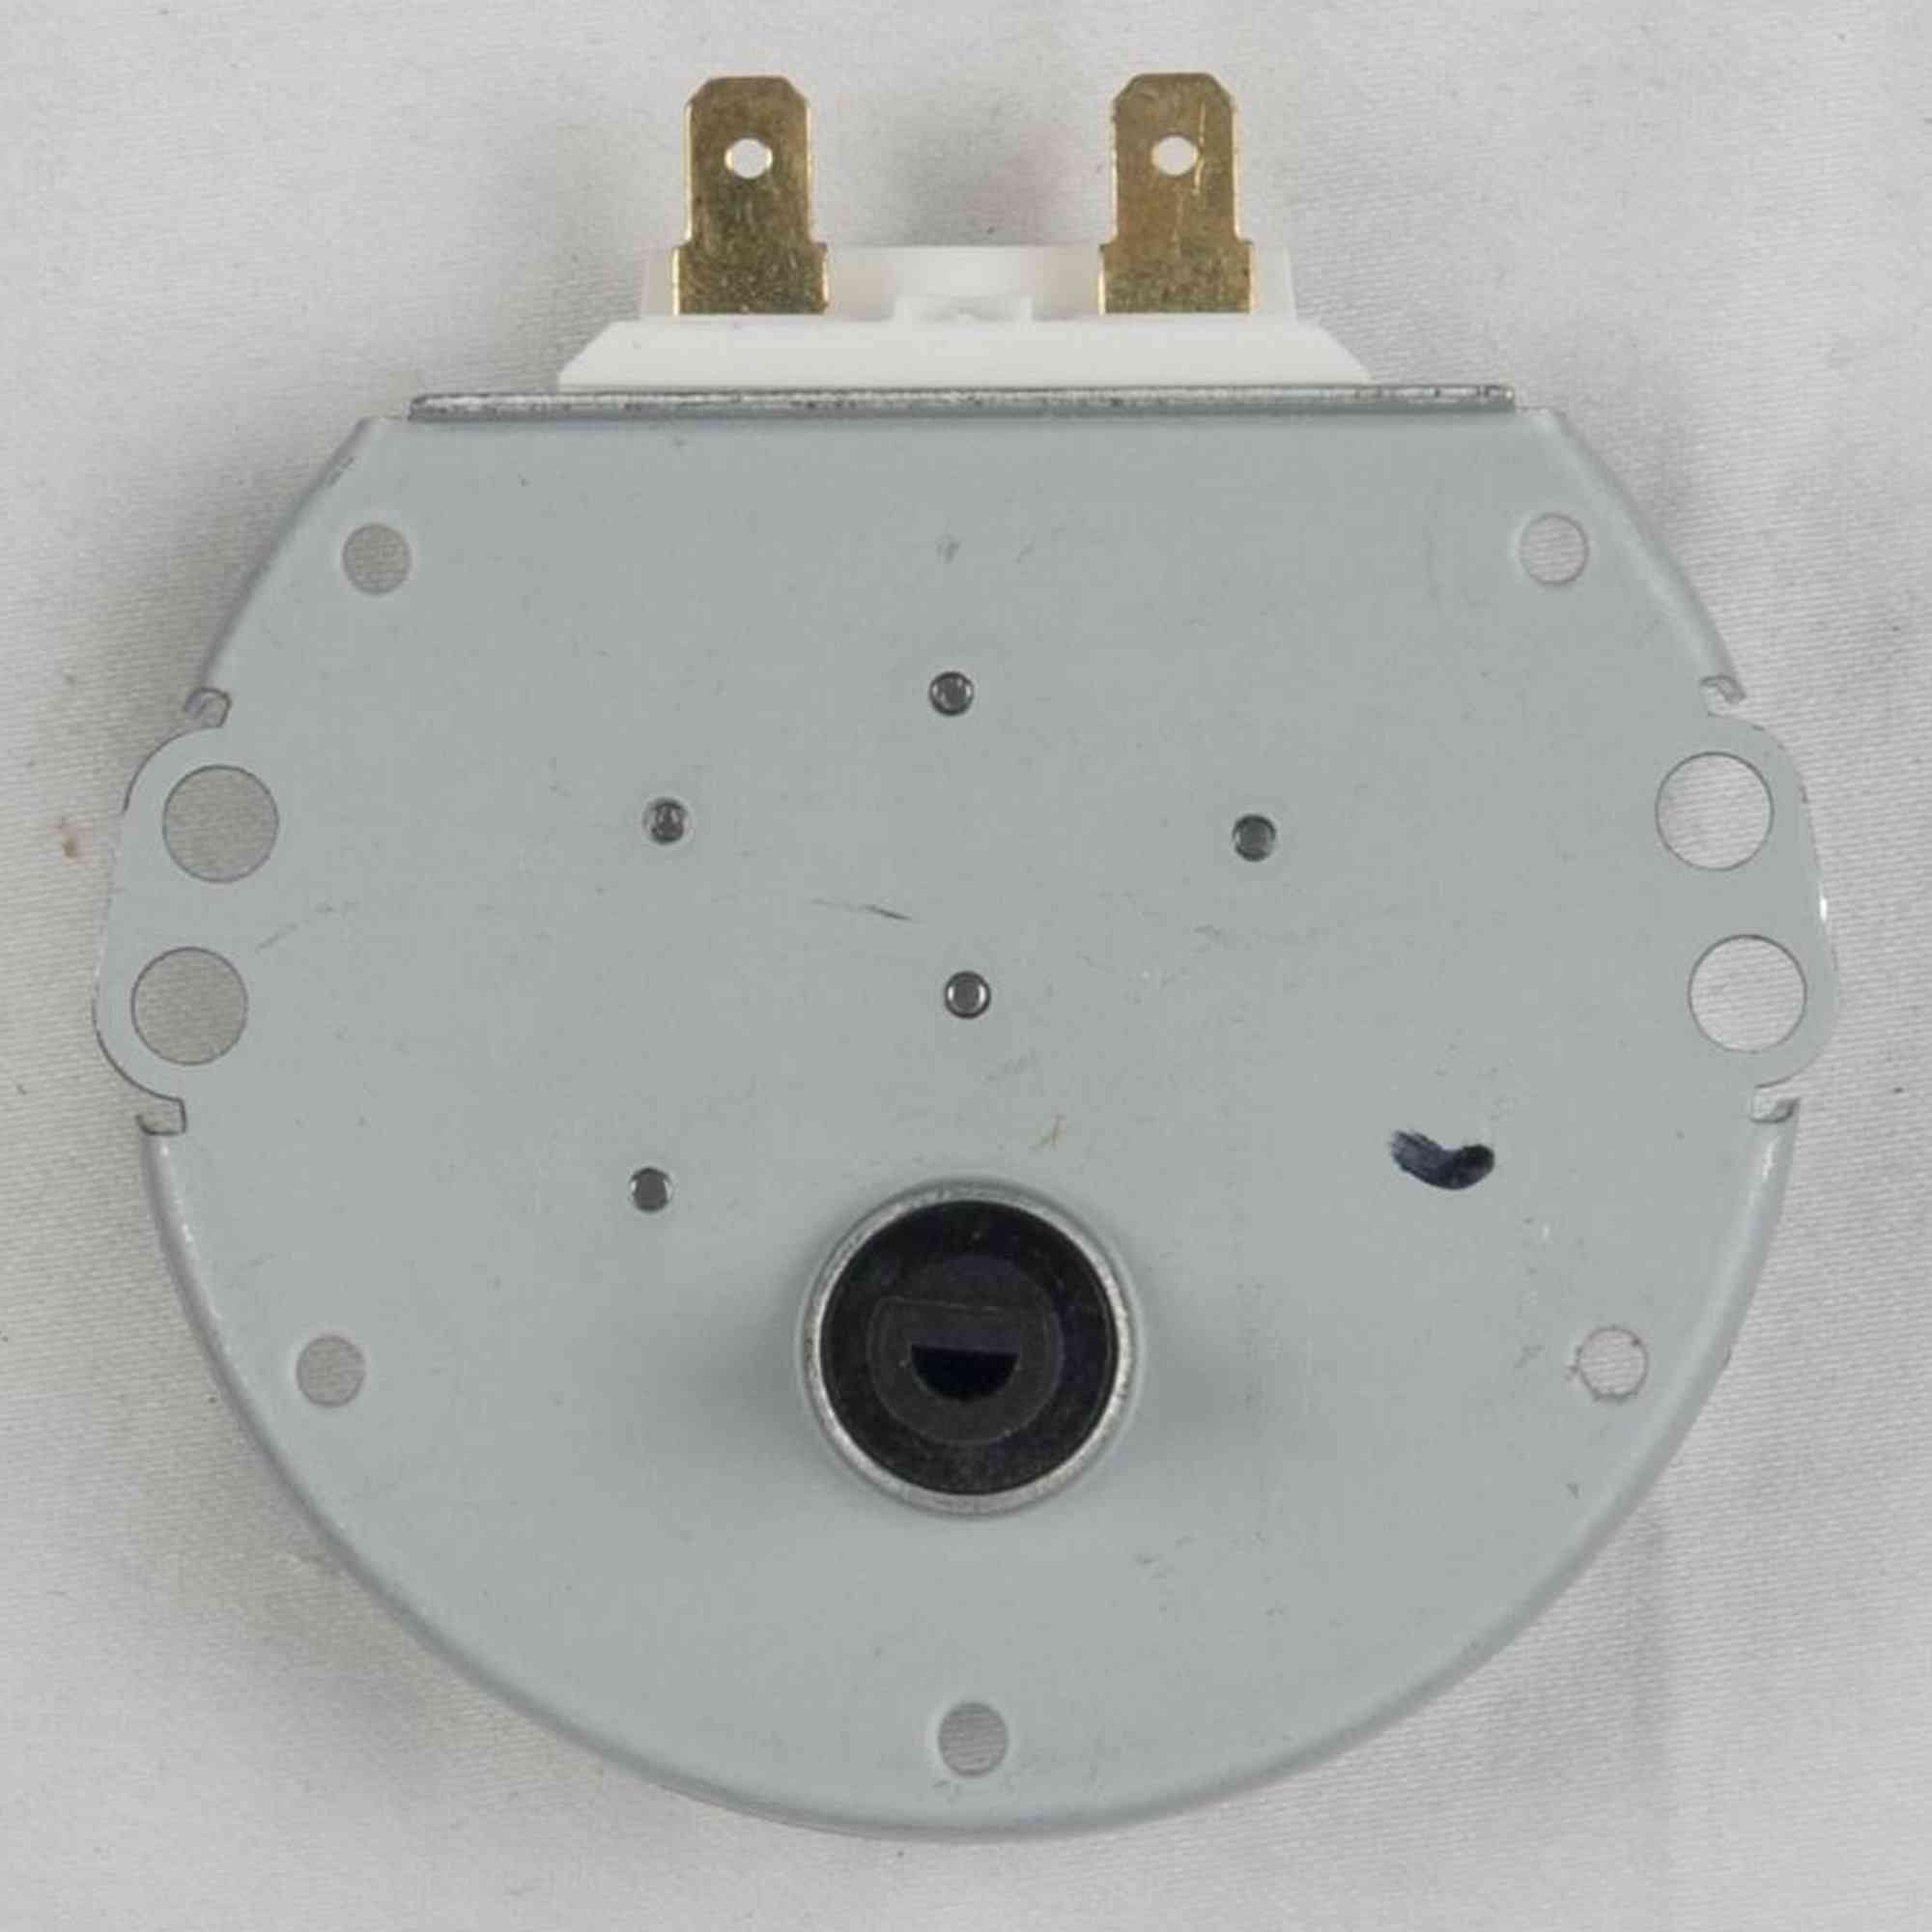 WB26X10240 For GE Microwave Turntable Motor